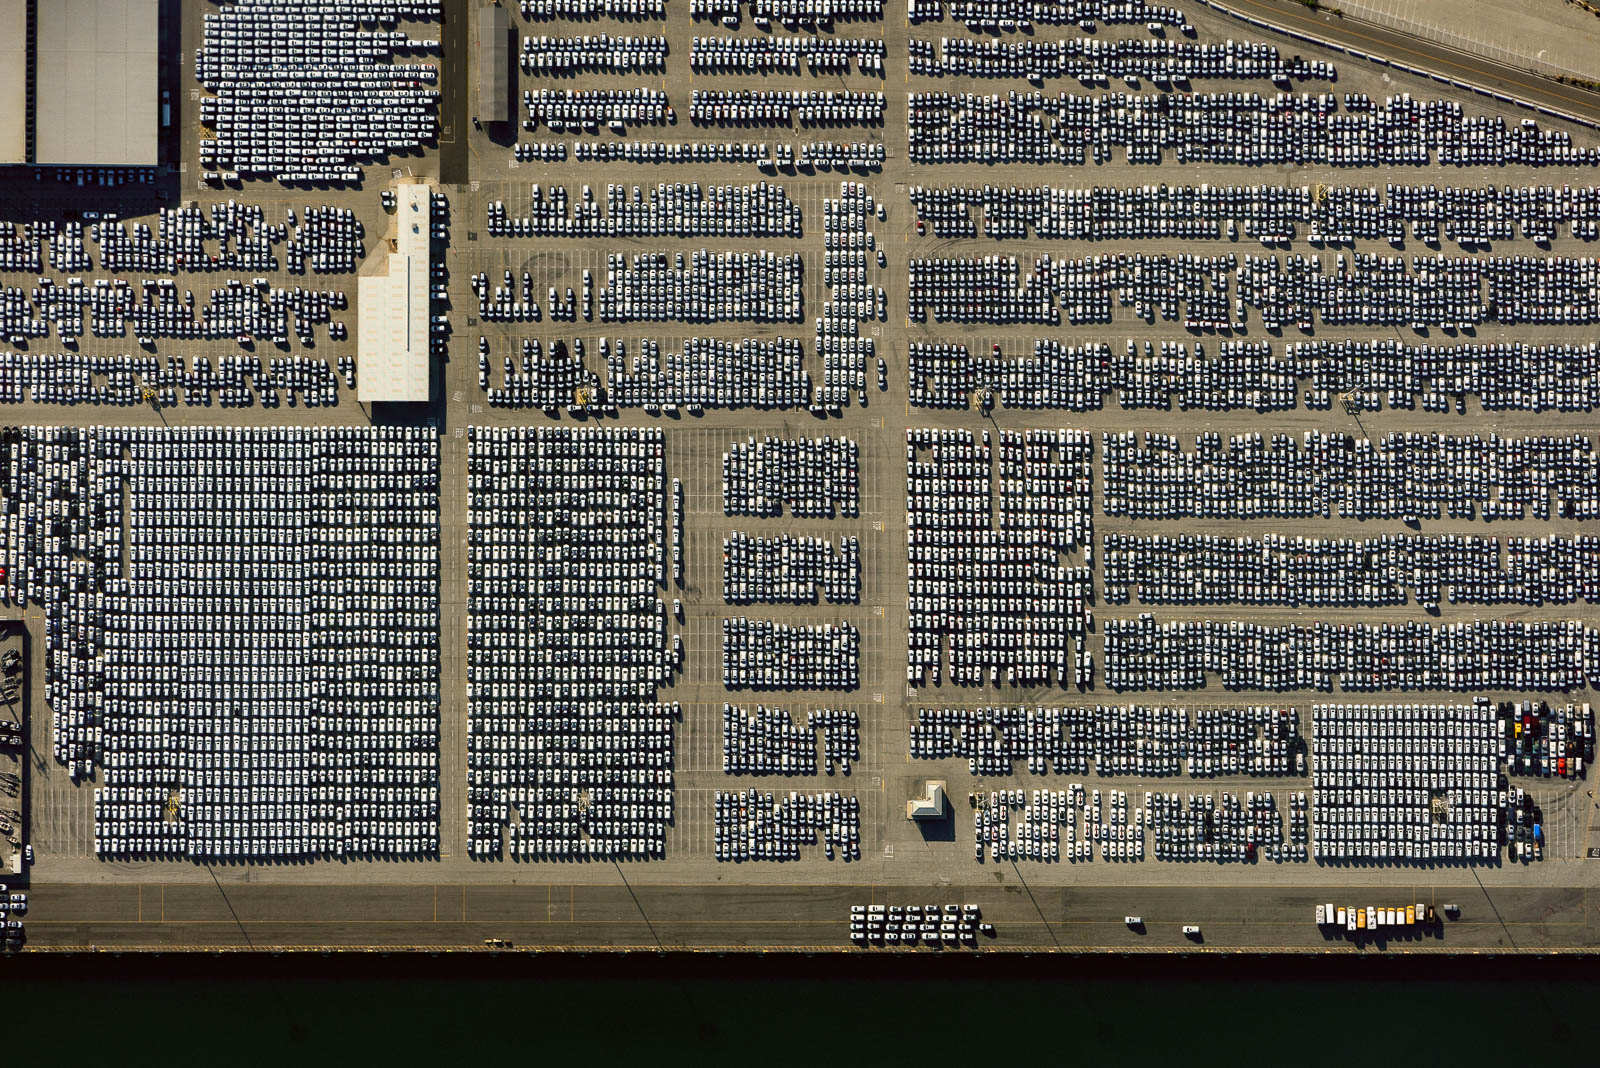 New car parking lot in Port of LA, Wilmington, CA (May 19, 2020)